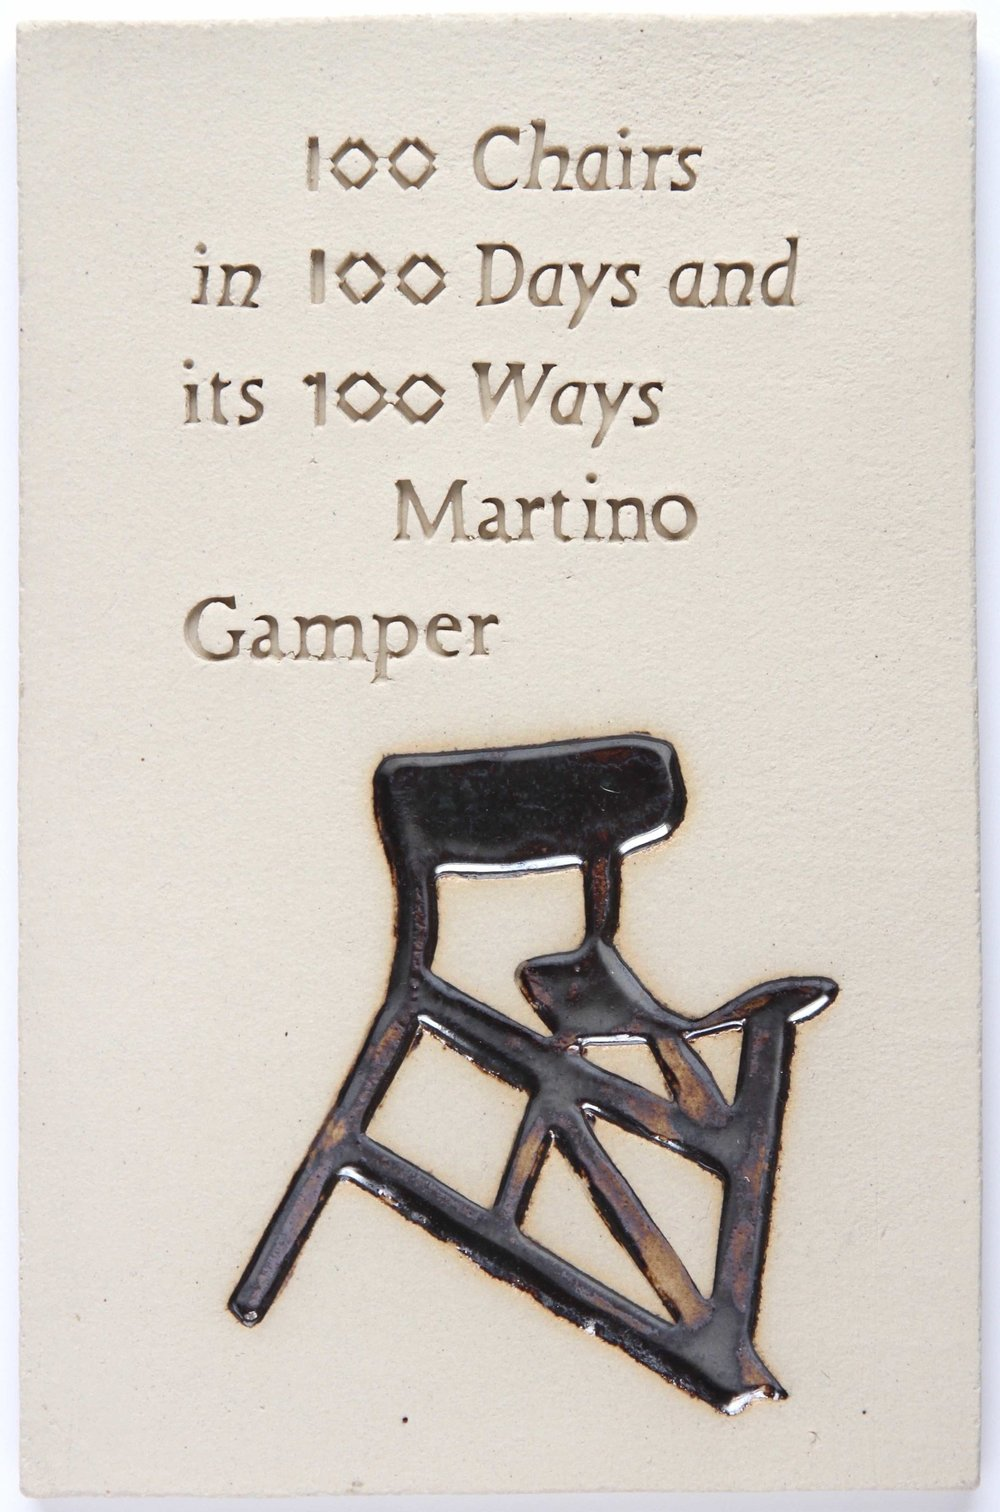 100+Chairs+in+100+Days+2.jpg